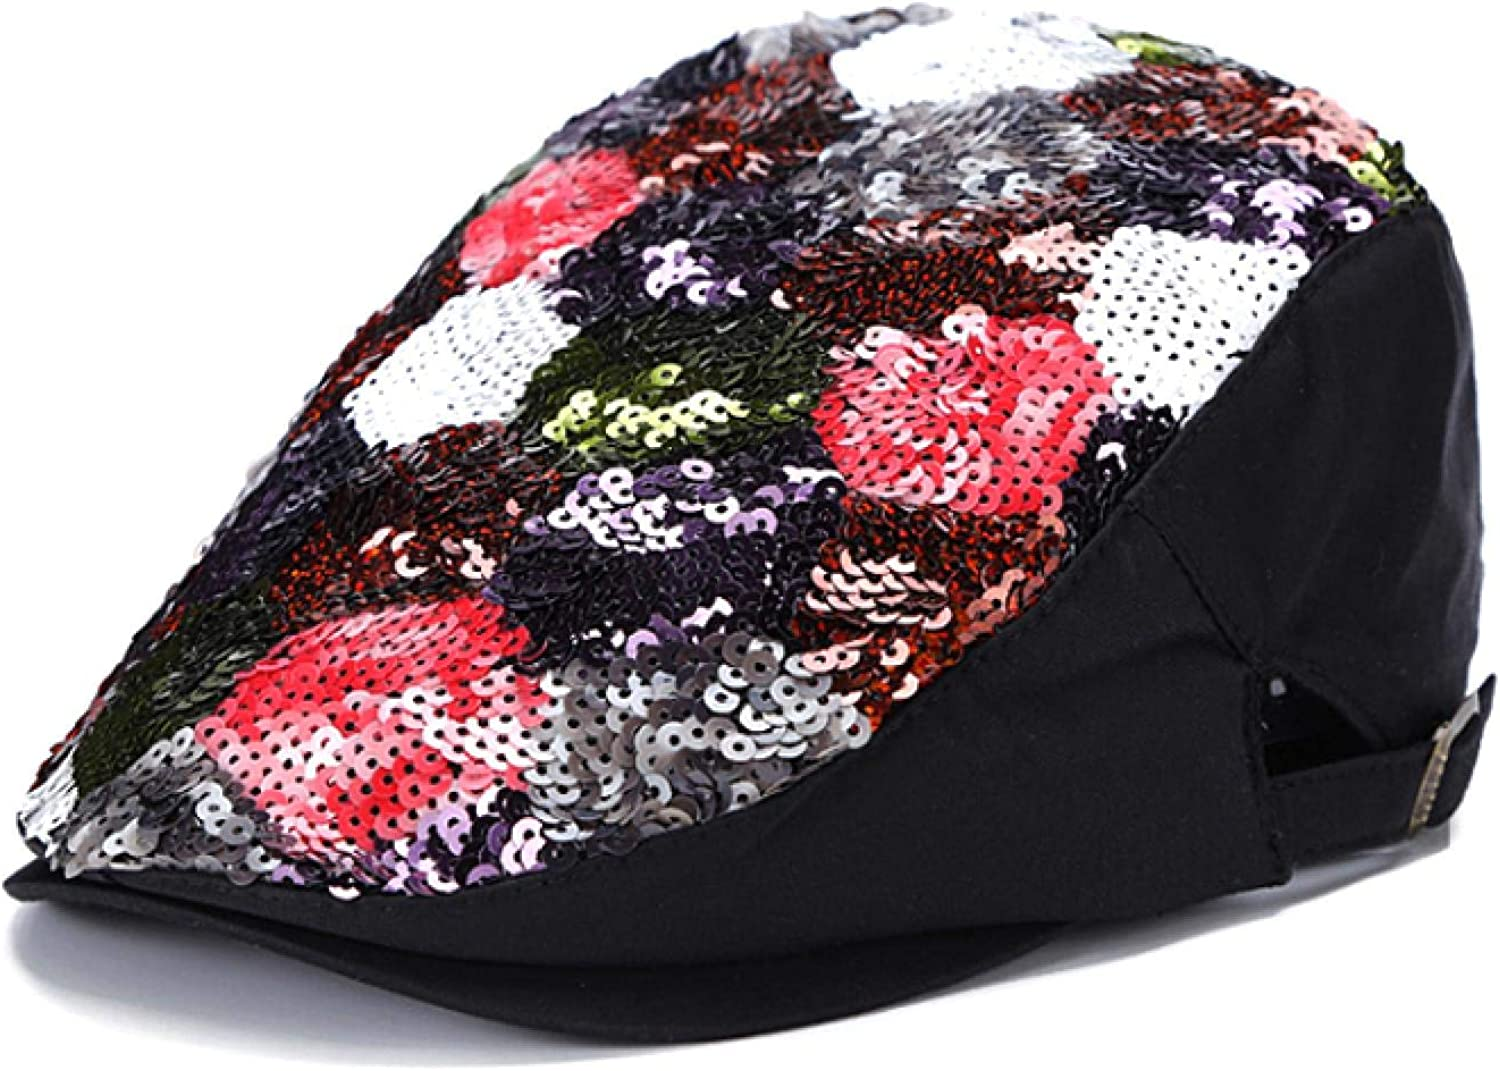 Hat Department store Price reduction Women Spring and Autumn Korean Sequins Flower Fashion Beret